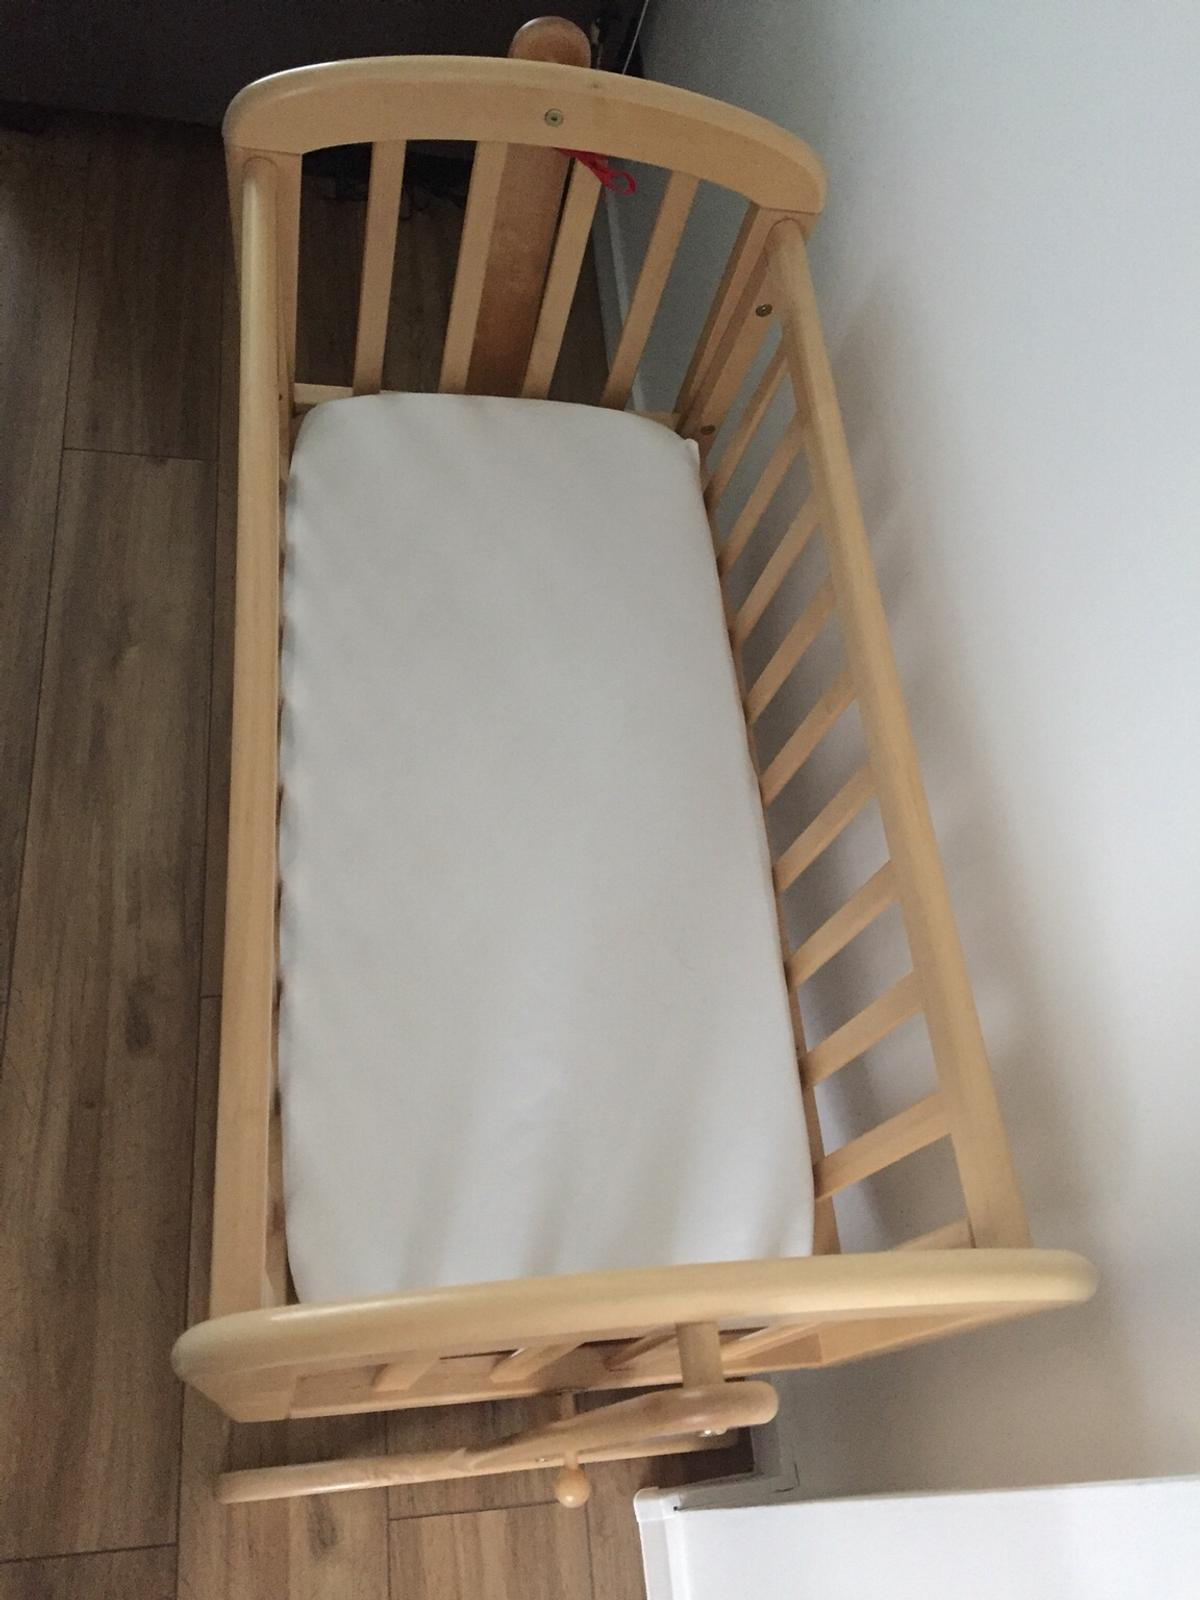 John Lewis Swing Crib In Le18 Leicester For 50 00 For Sale Shpock